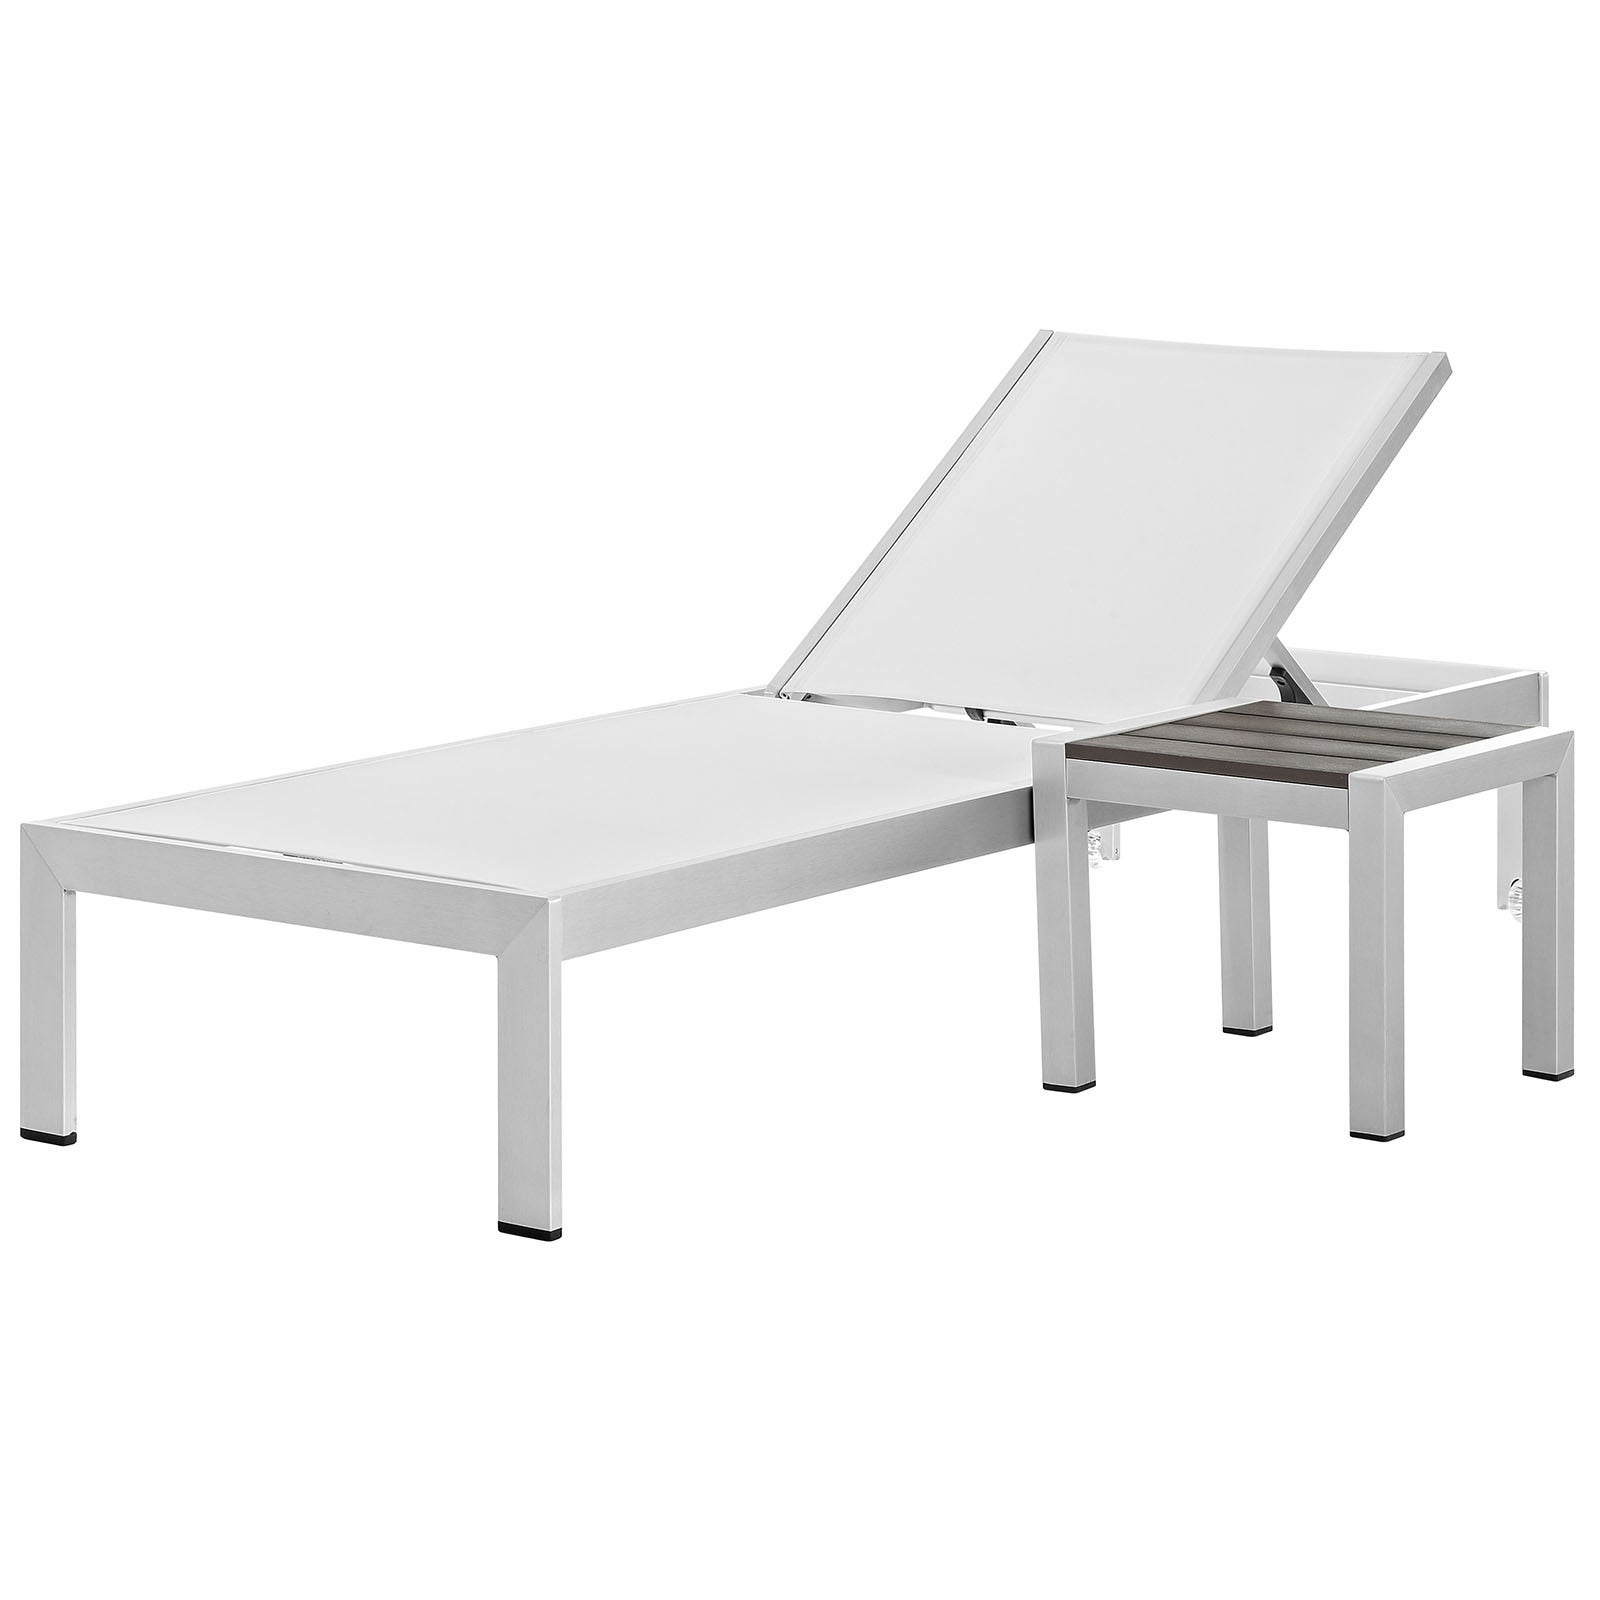 Fashionable Shore Aluminum Outdoor Chaise Set Of 2 Inside Shore Aluminum Outdoor Chaise Lounges (View 4 of 25)